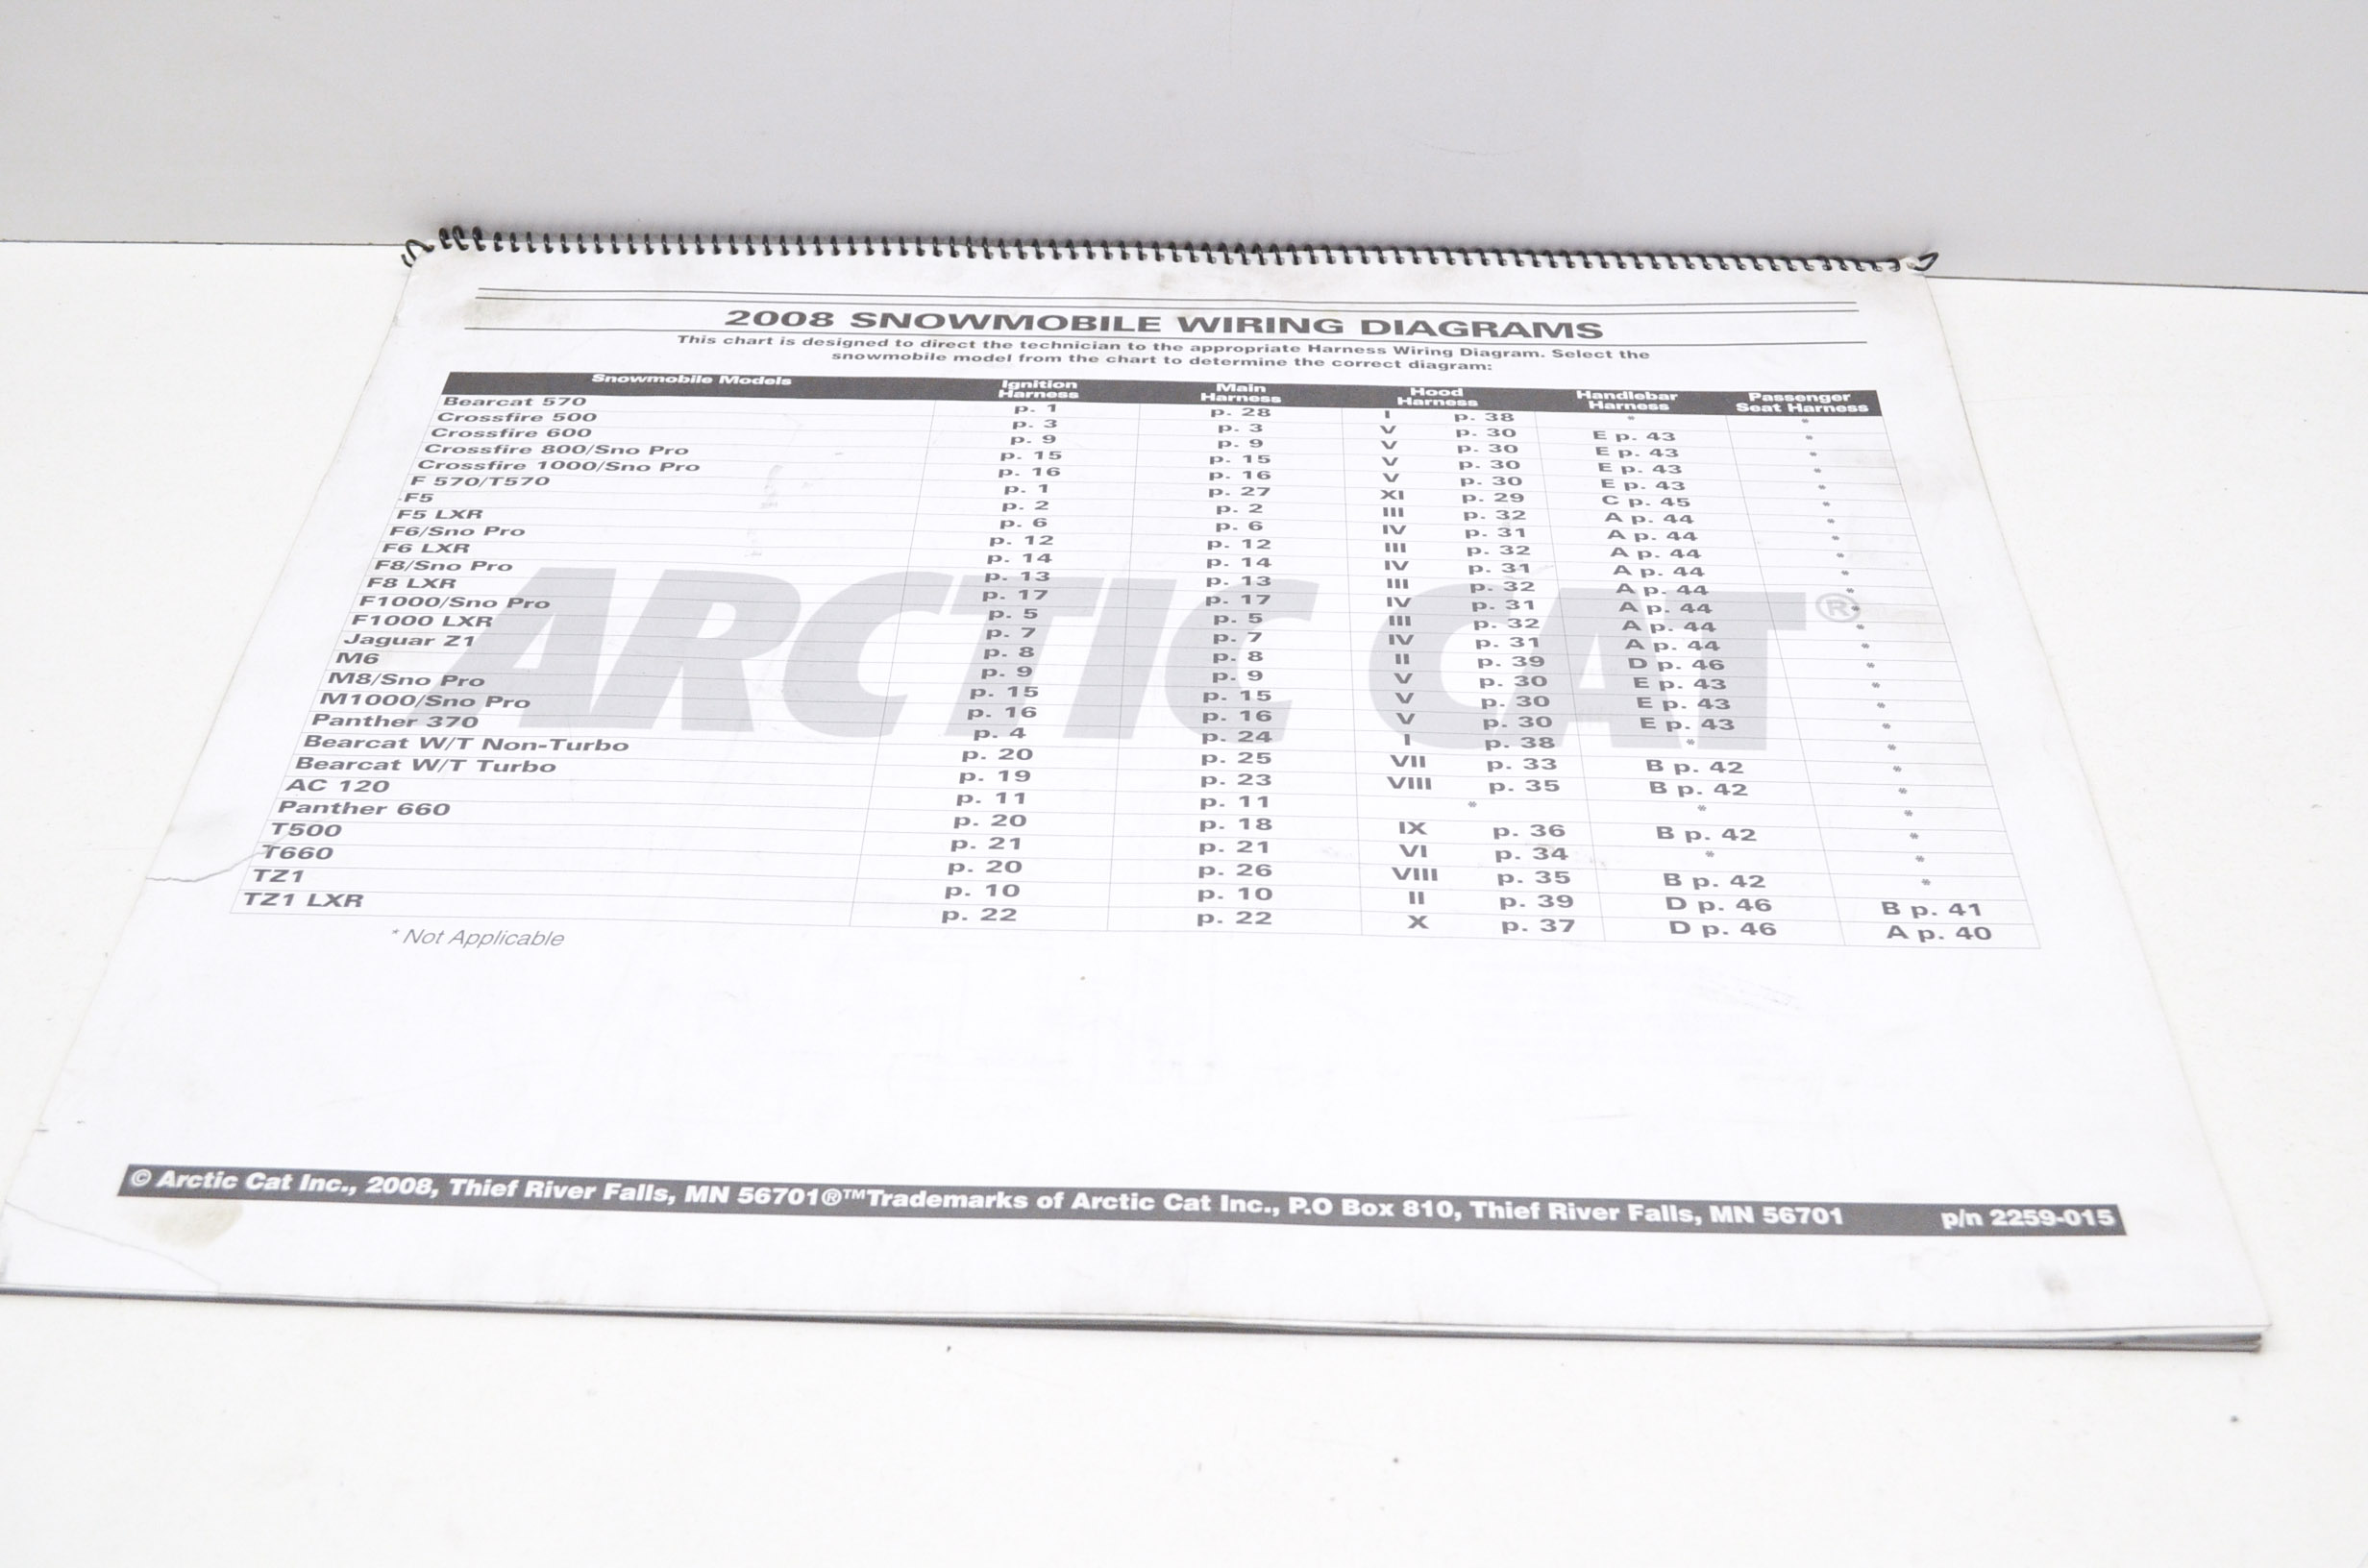 hight resolution of arctic cat 2259 015 2008 snowmobile wiring diagrams qty 1 walmart comarctic cat snowmobile wiring diagrams